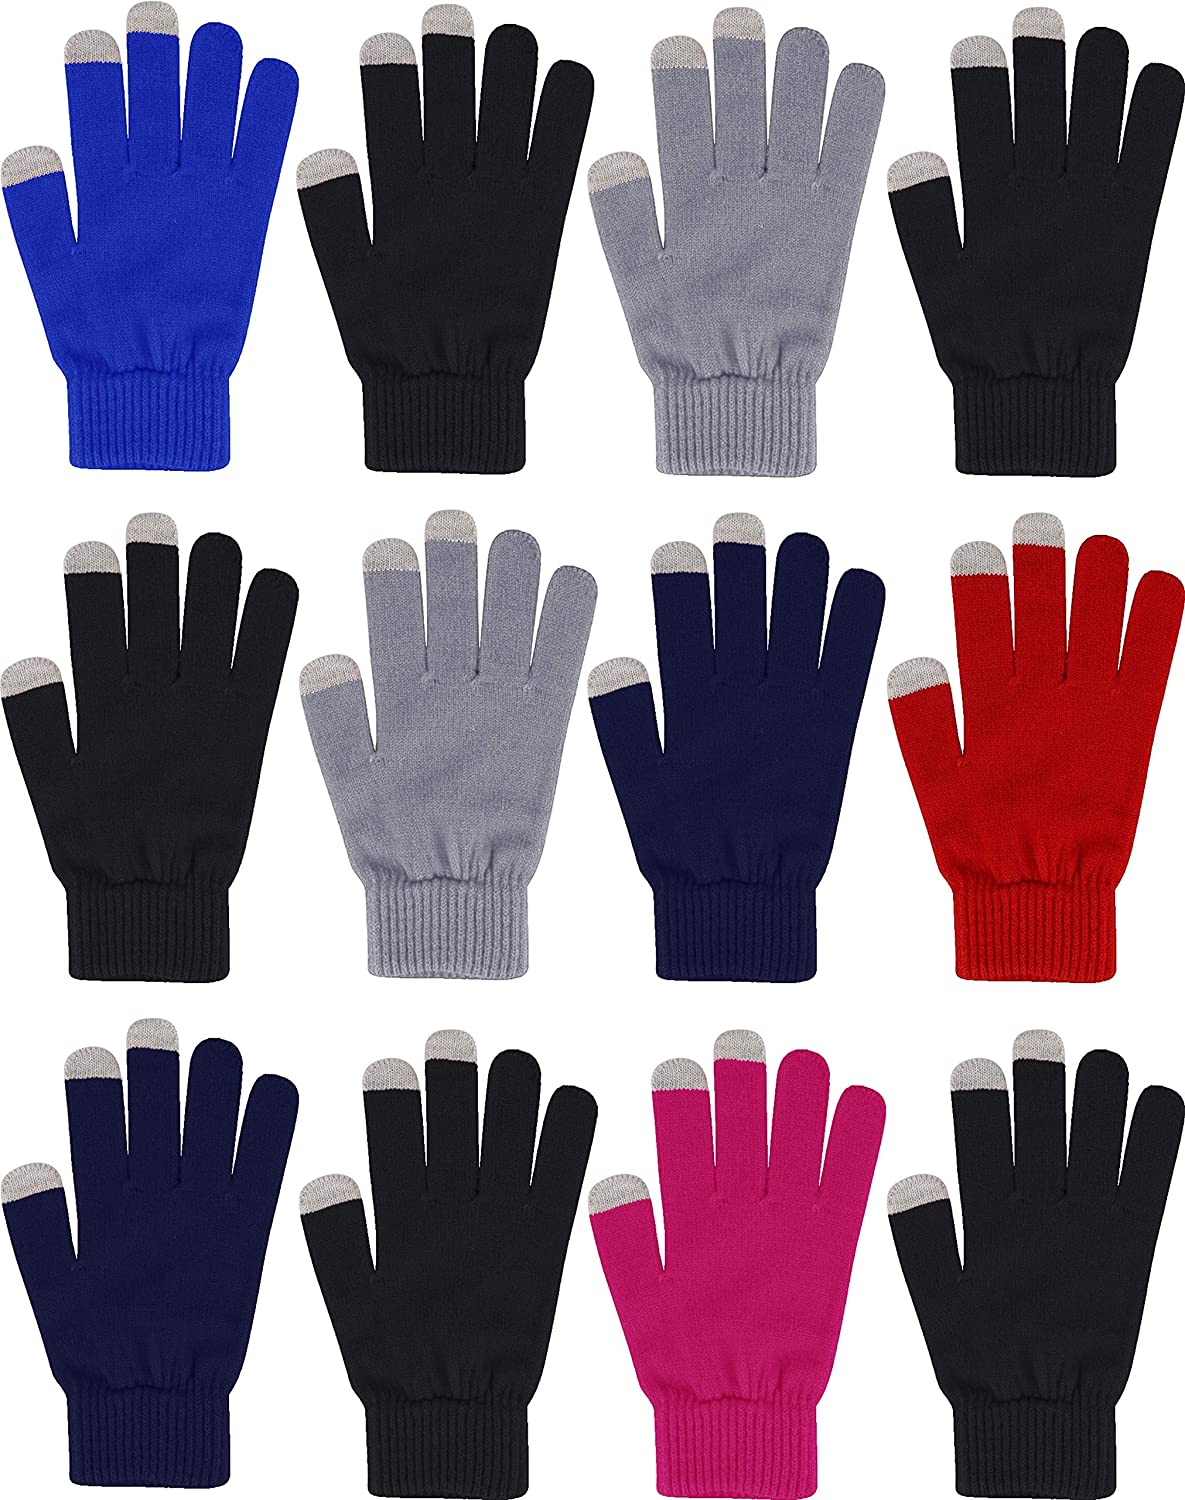 12 Pairs Touch Screen Gloves, Thermal Winter Bulk Pack, Lightweight Warm Soft Stretchy